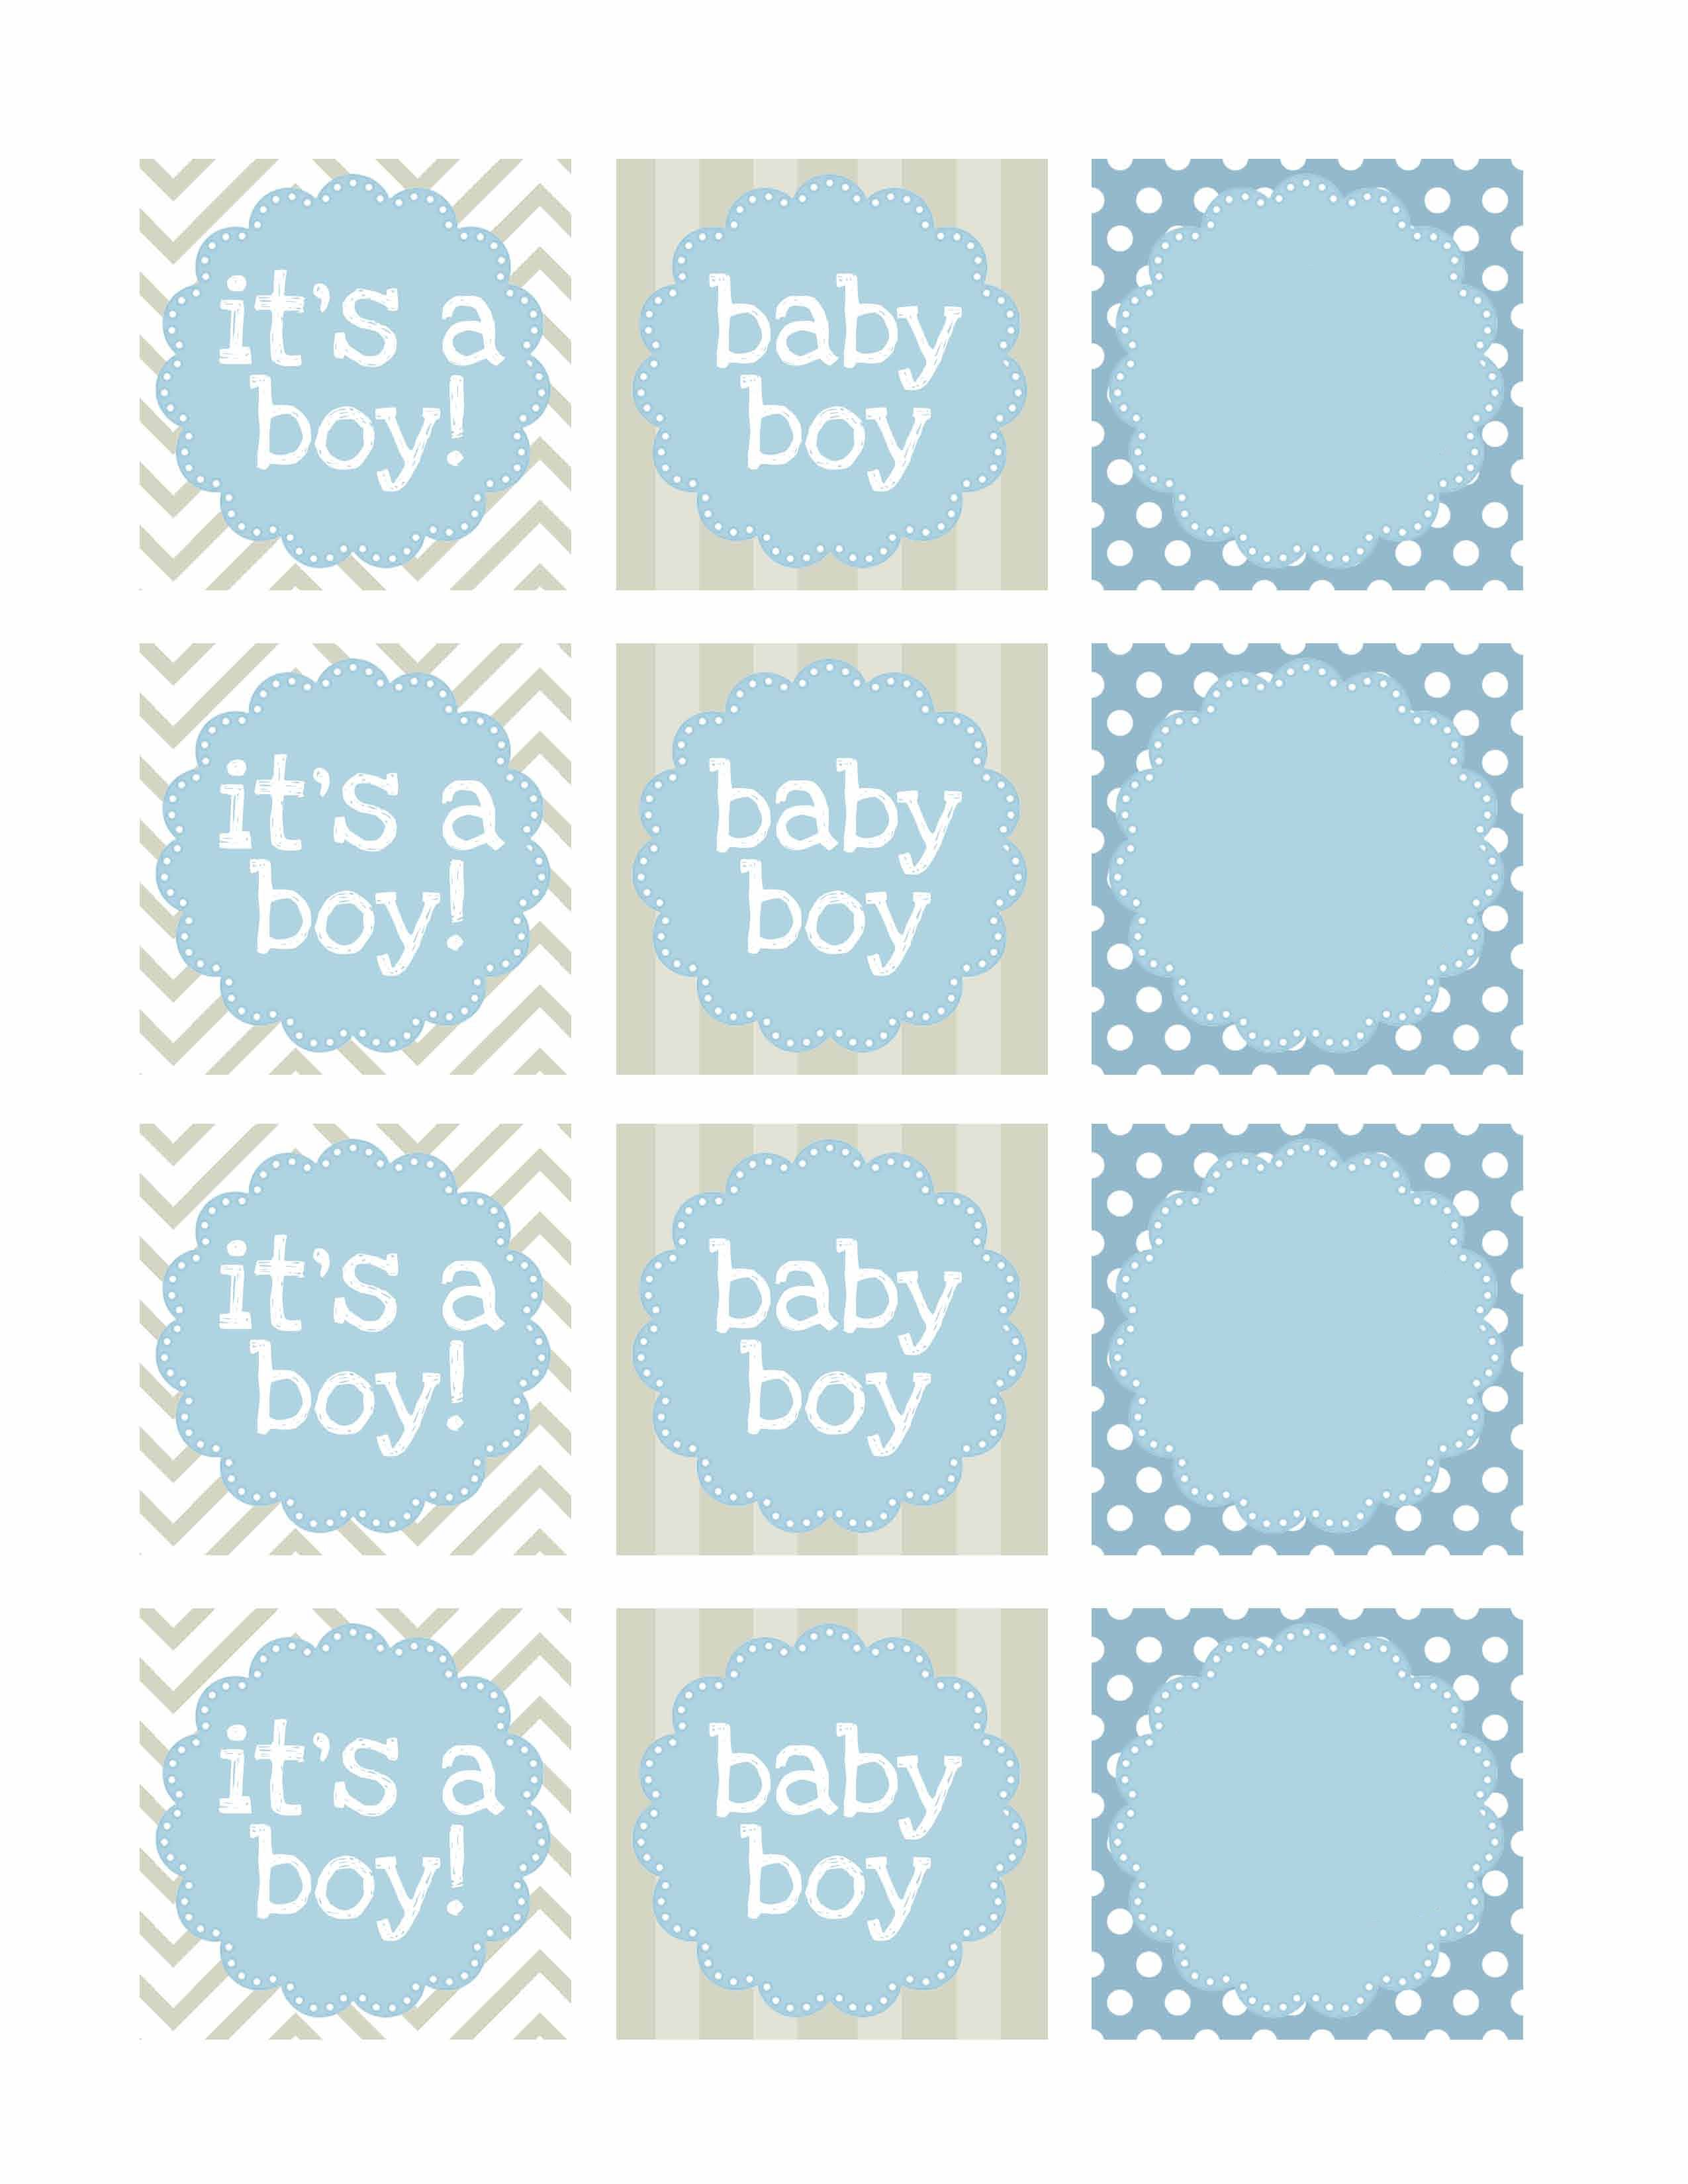 Boy baby shower free printables shower banners baby boy shower and boy baby showers for Printable baby shower tags